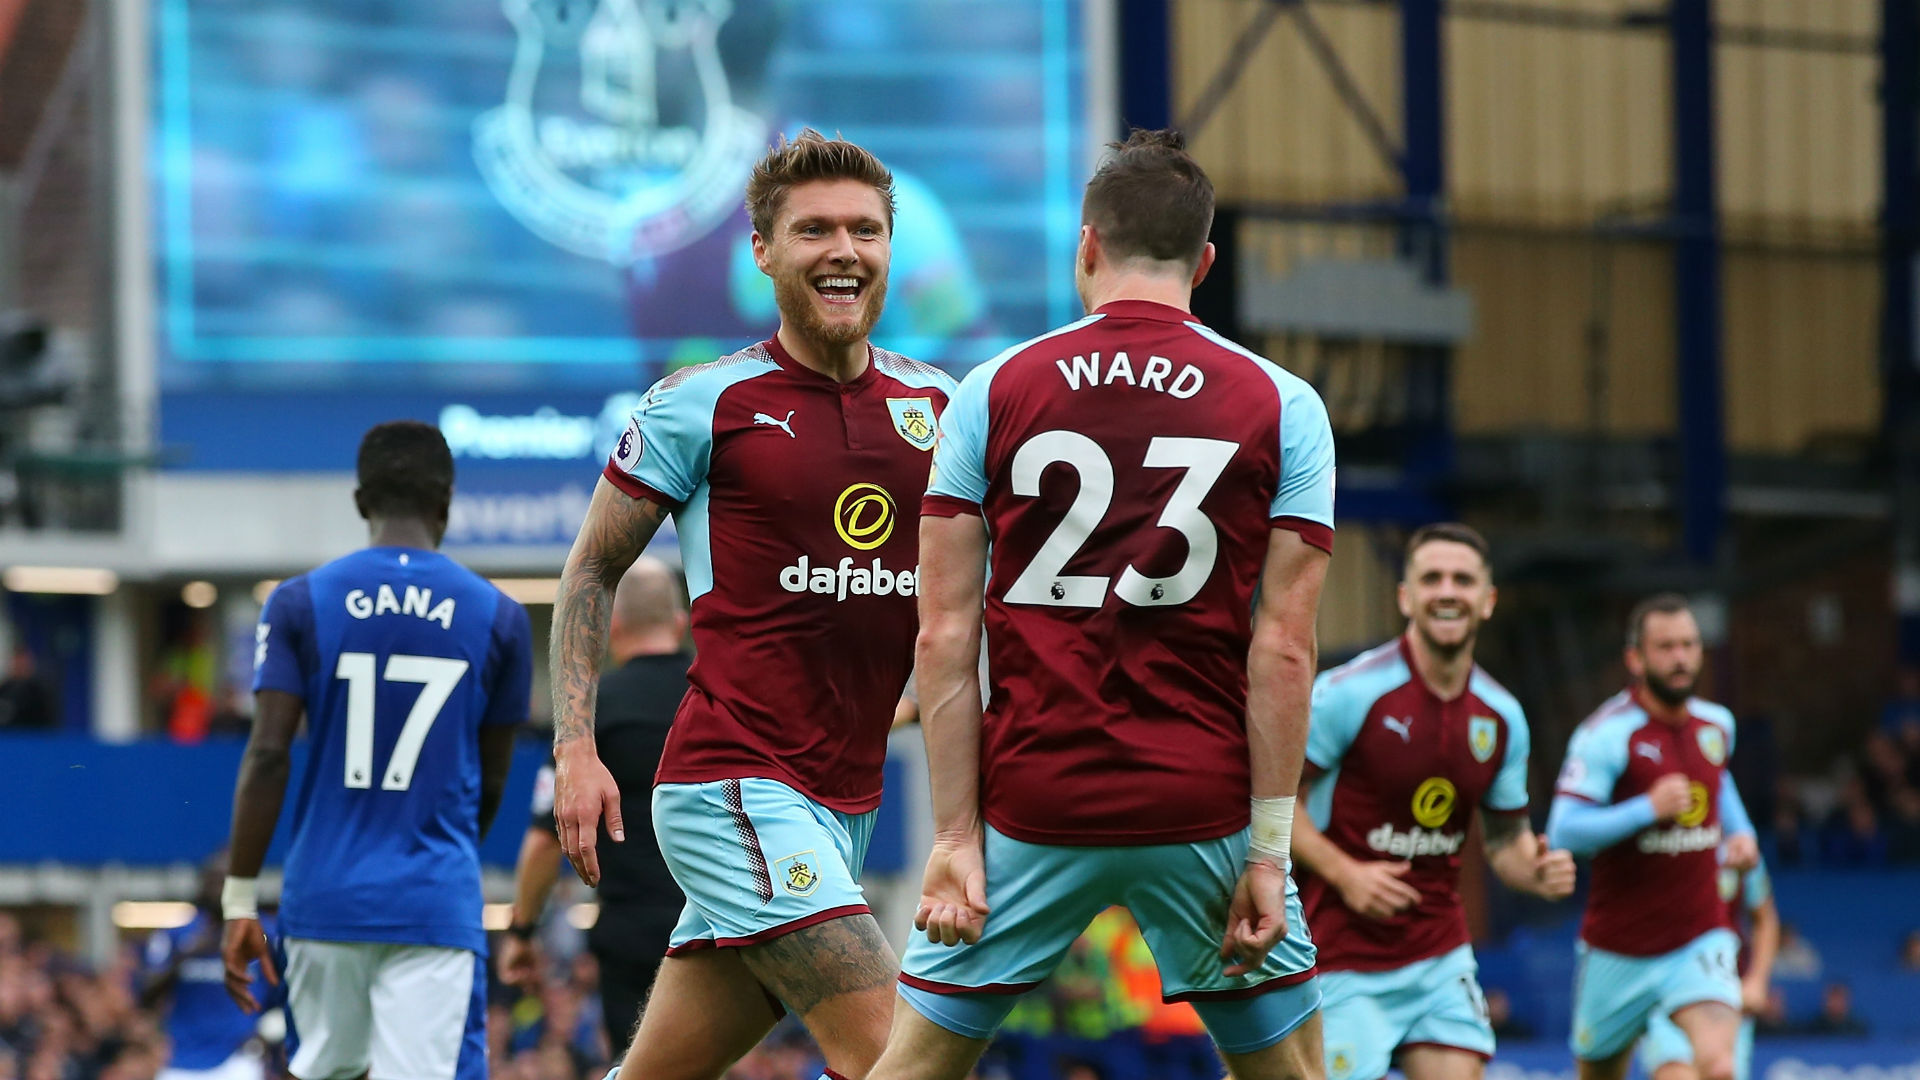 Kane delighted as Burnley treble puts Tottenham striker on brink of history